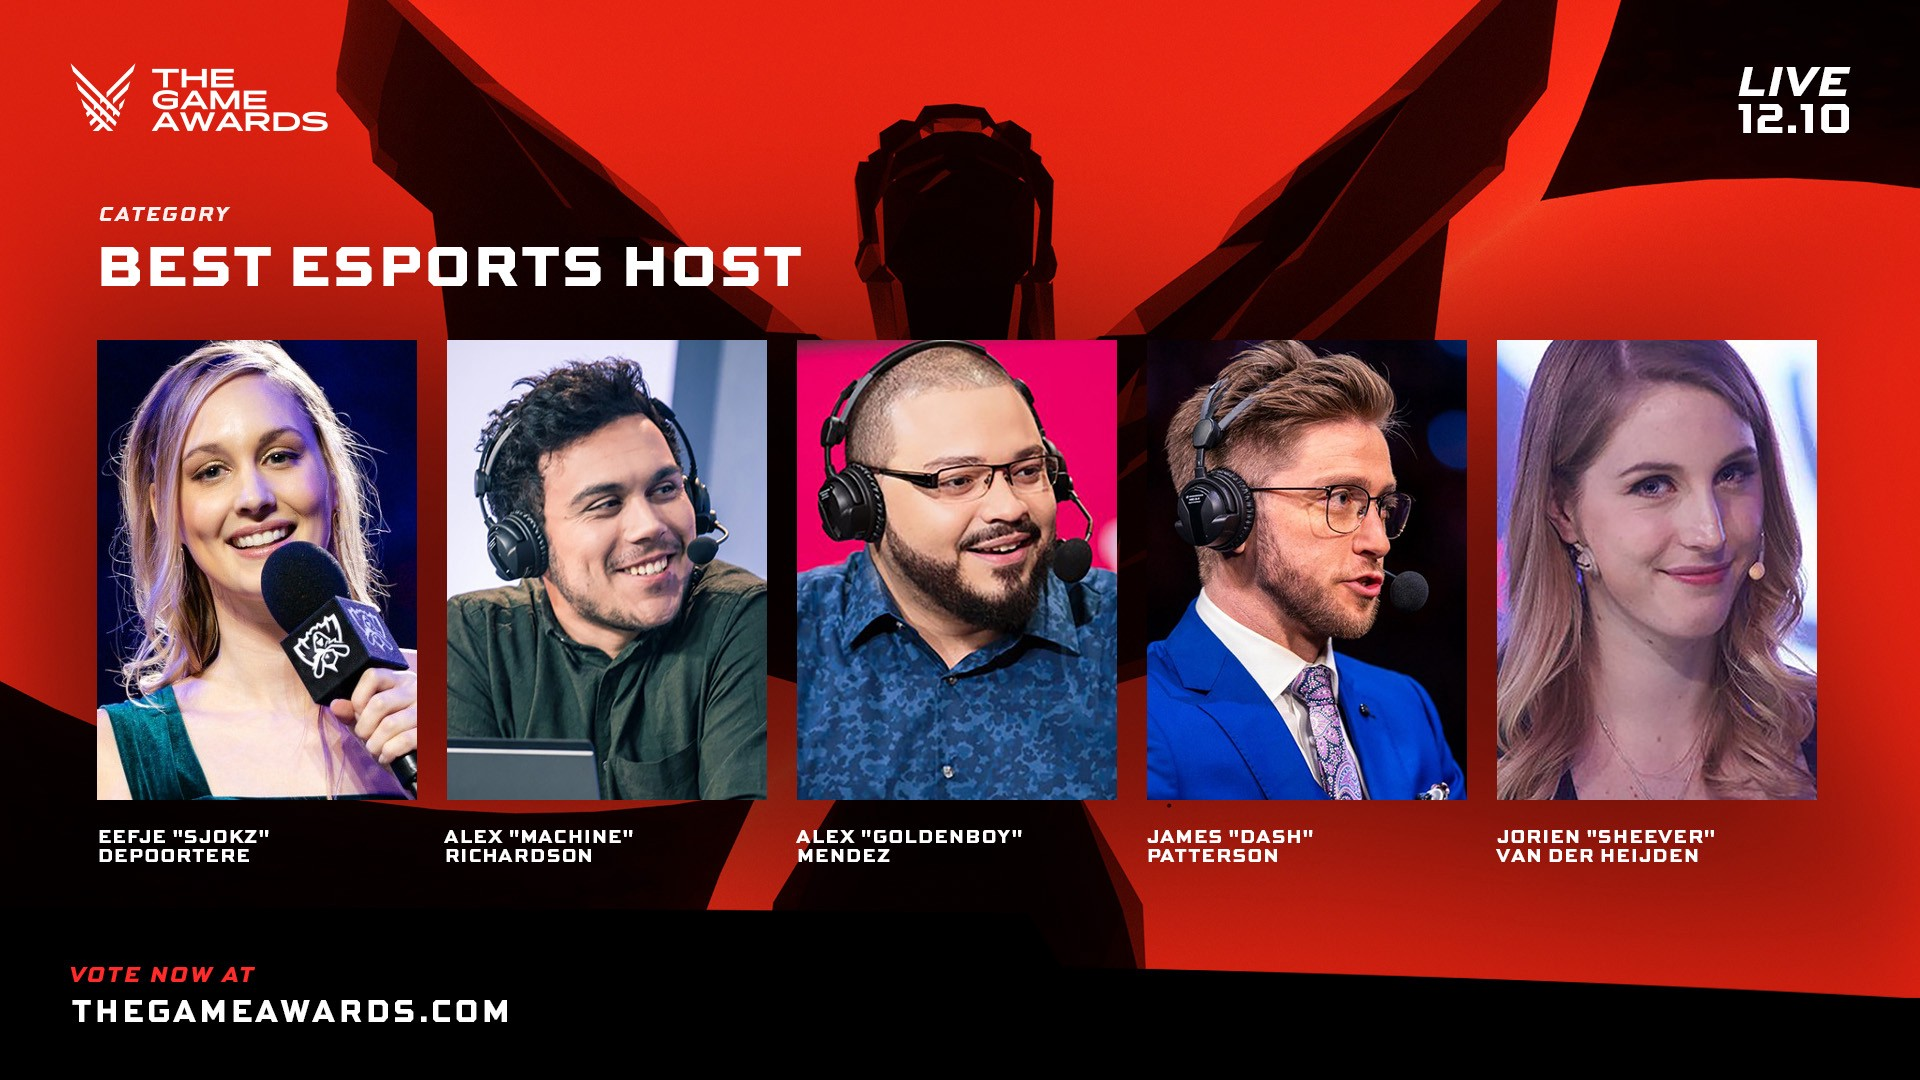 Best esports host at The Game Awards